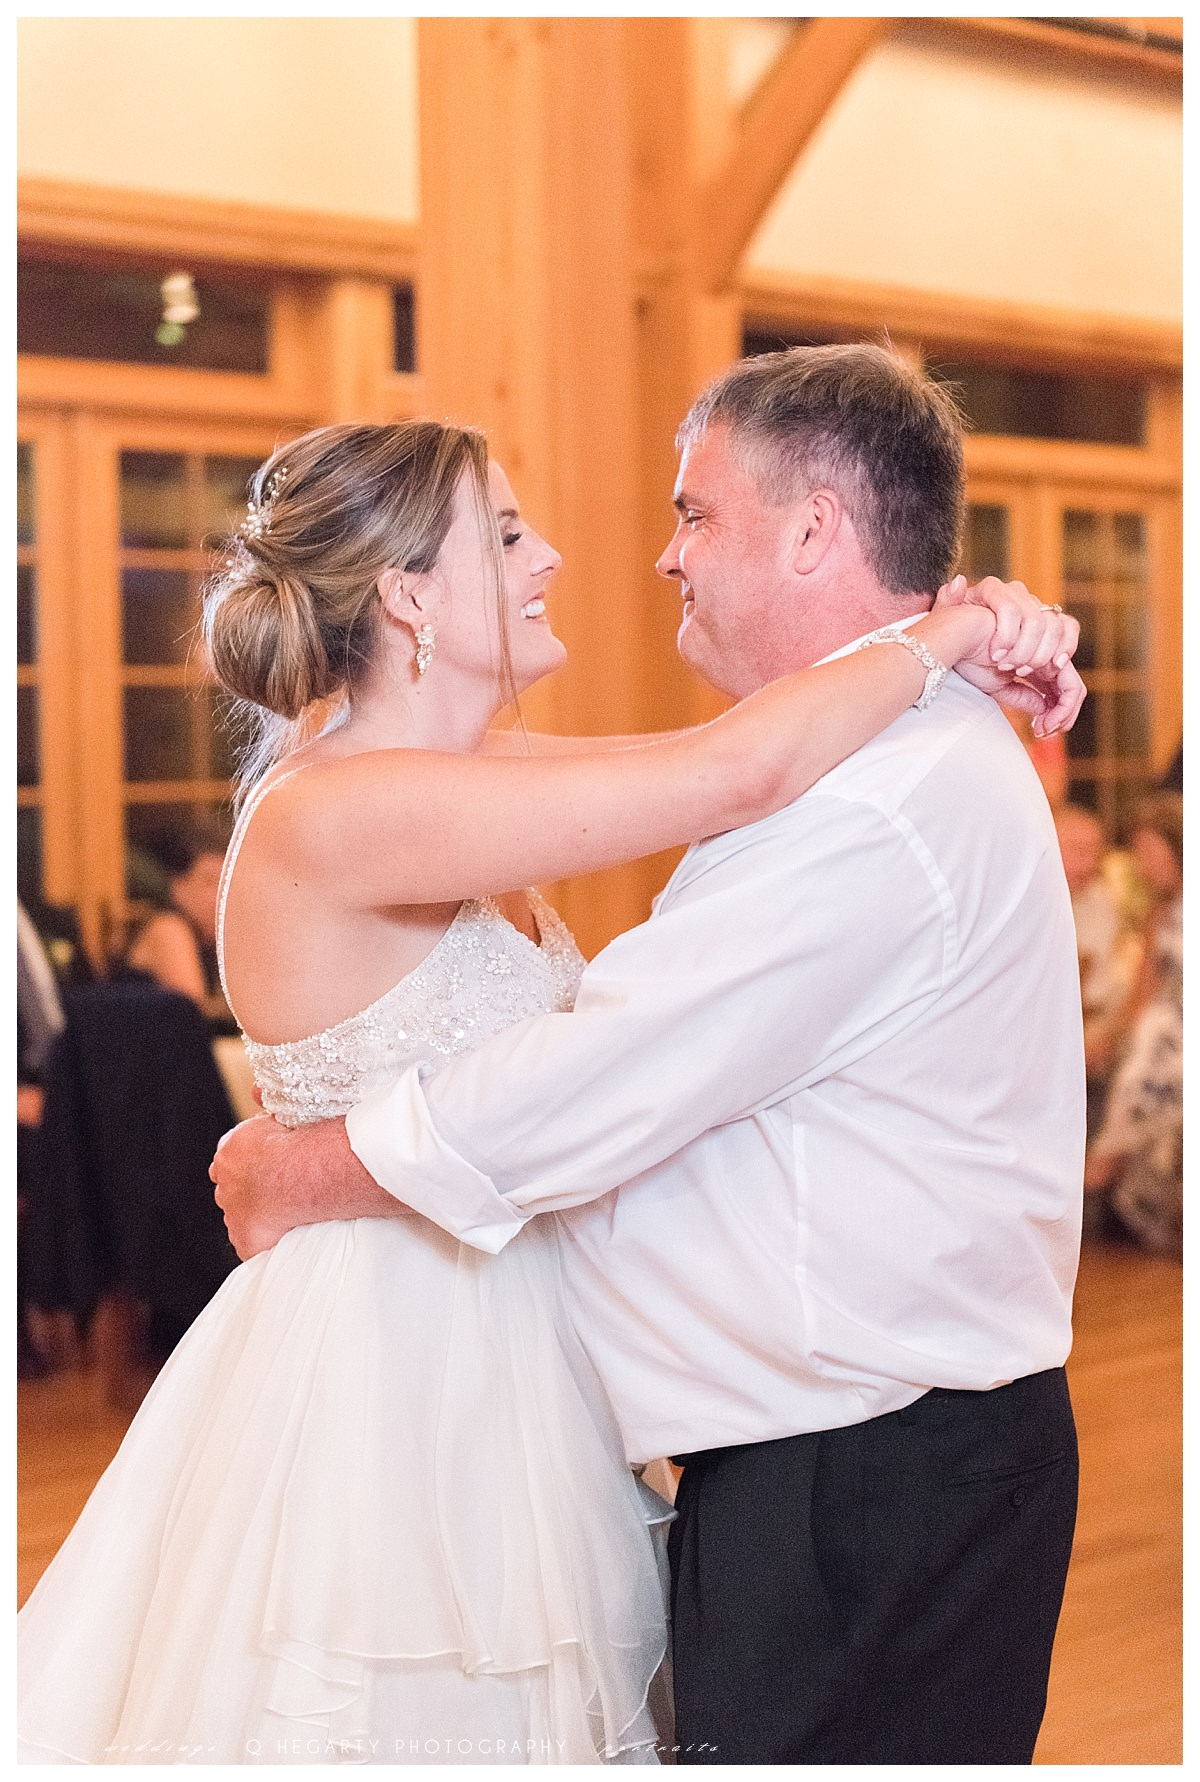 father and daughter dance photos at reception Q Hegarty Photography red barn outlook farm wedding in ME